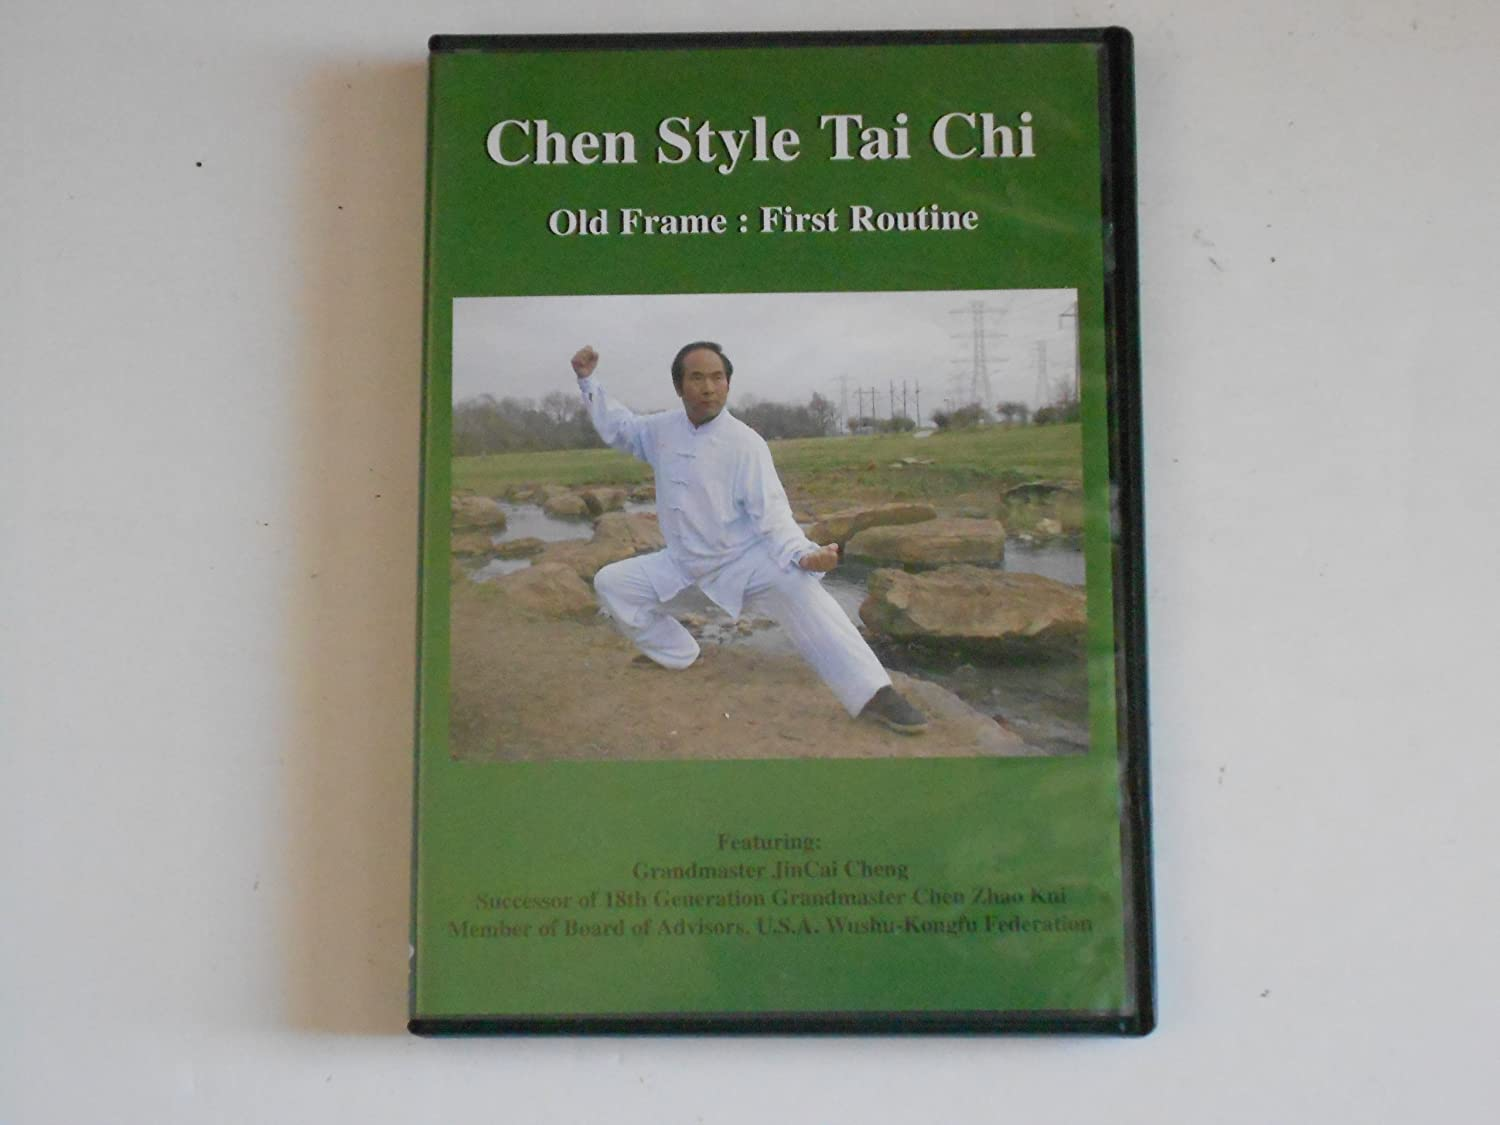 High Quality Amazon.com: Chen Style Tai Chi   Old Frame First Routine Feature  Grandmaster Cheng Jincai,Cheng Jincai Is A Successor Of The 18th Generation  Grand Master ...